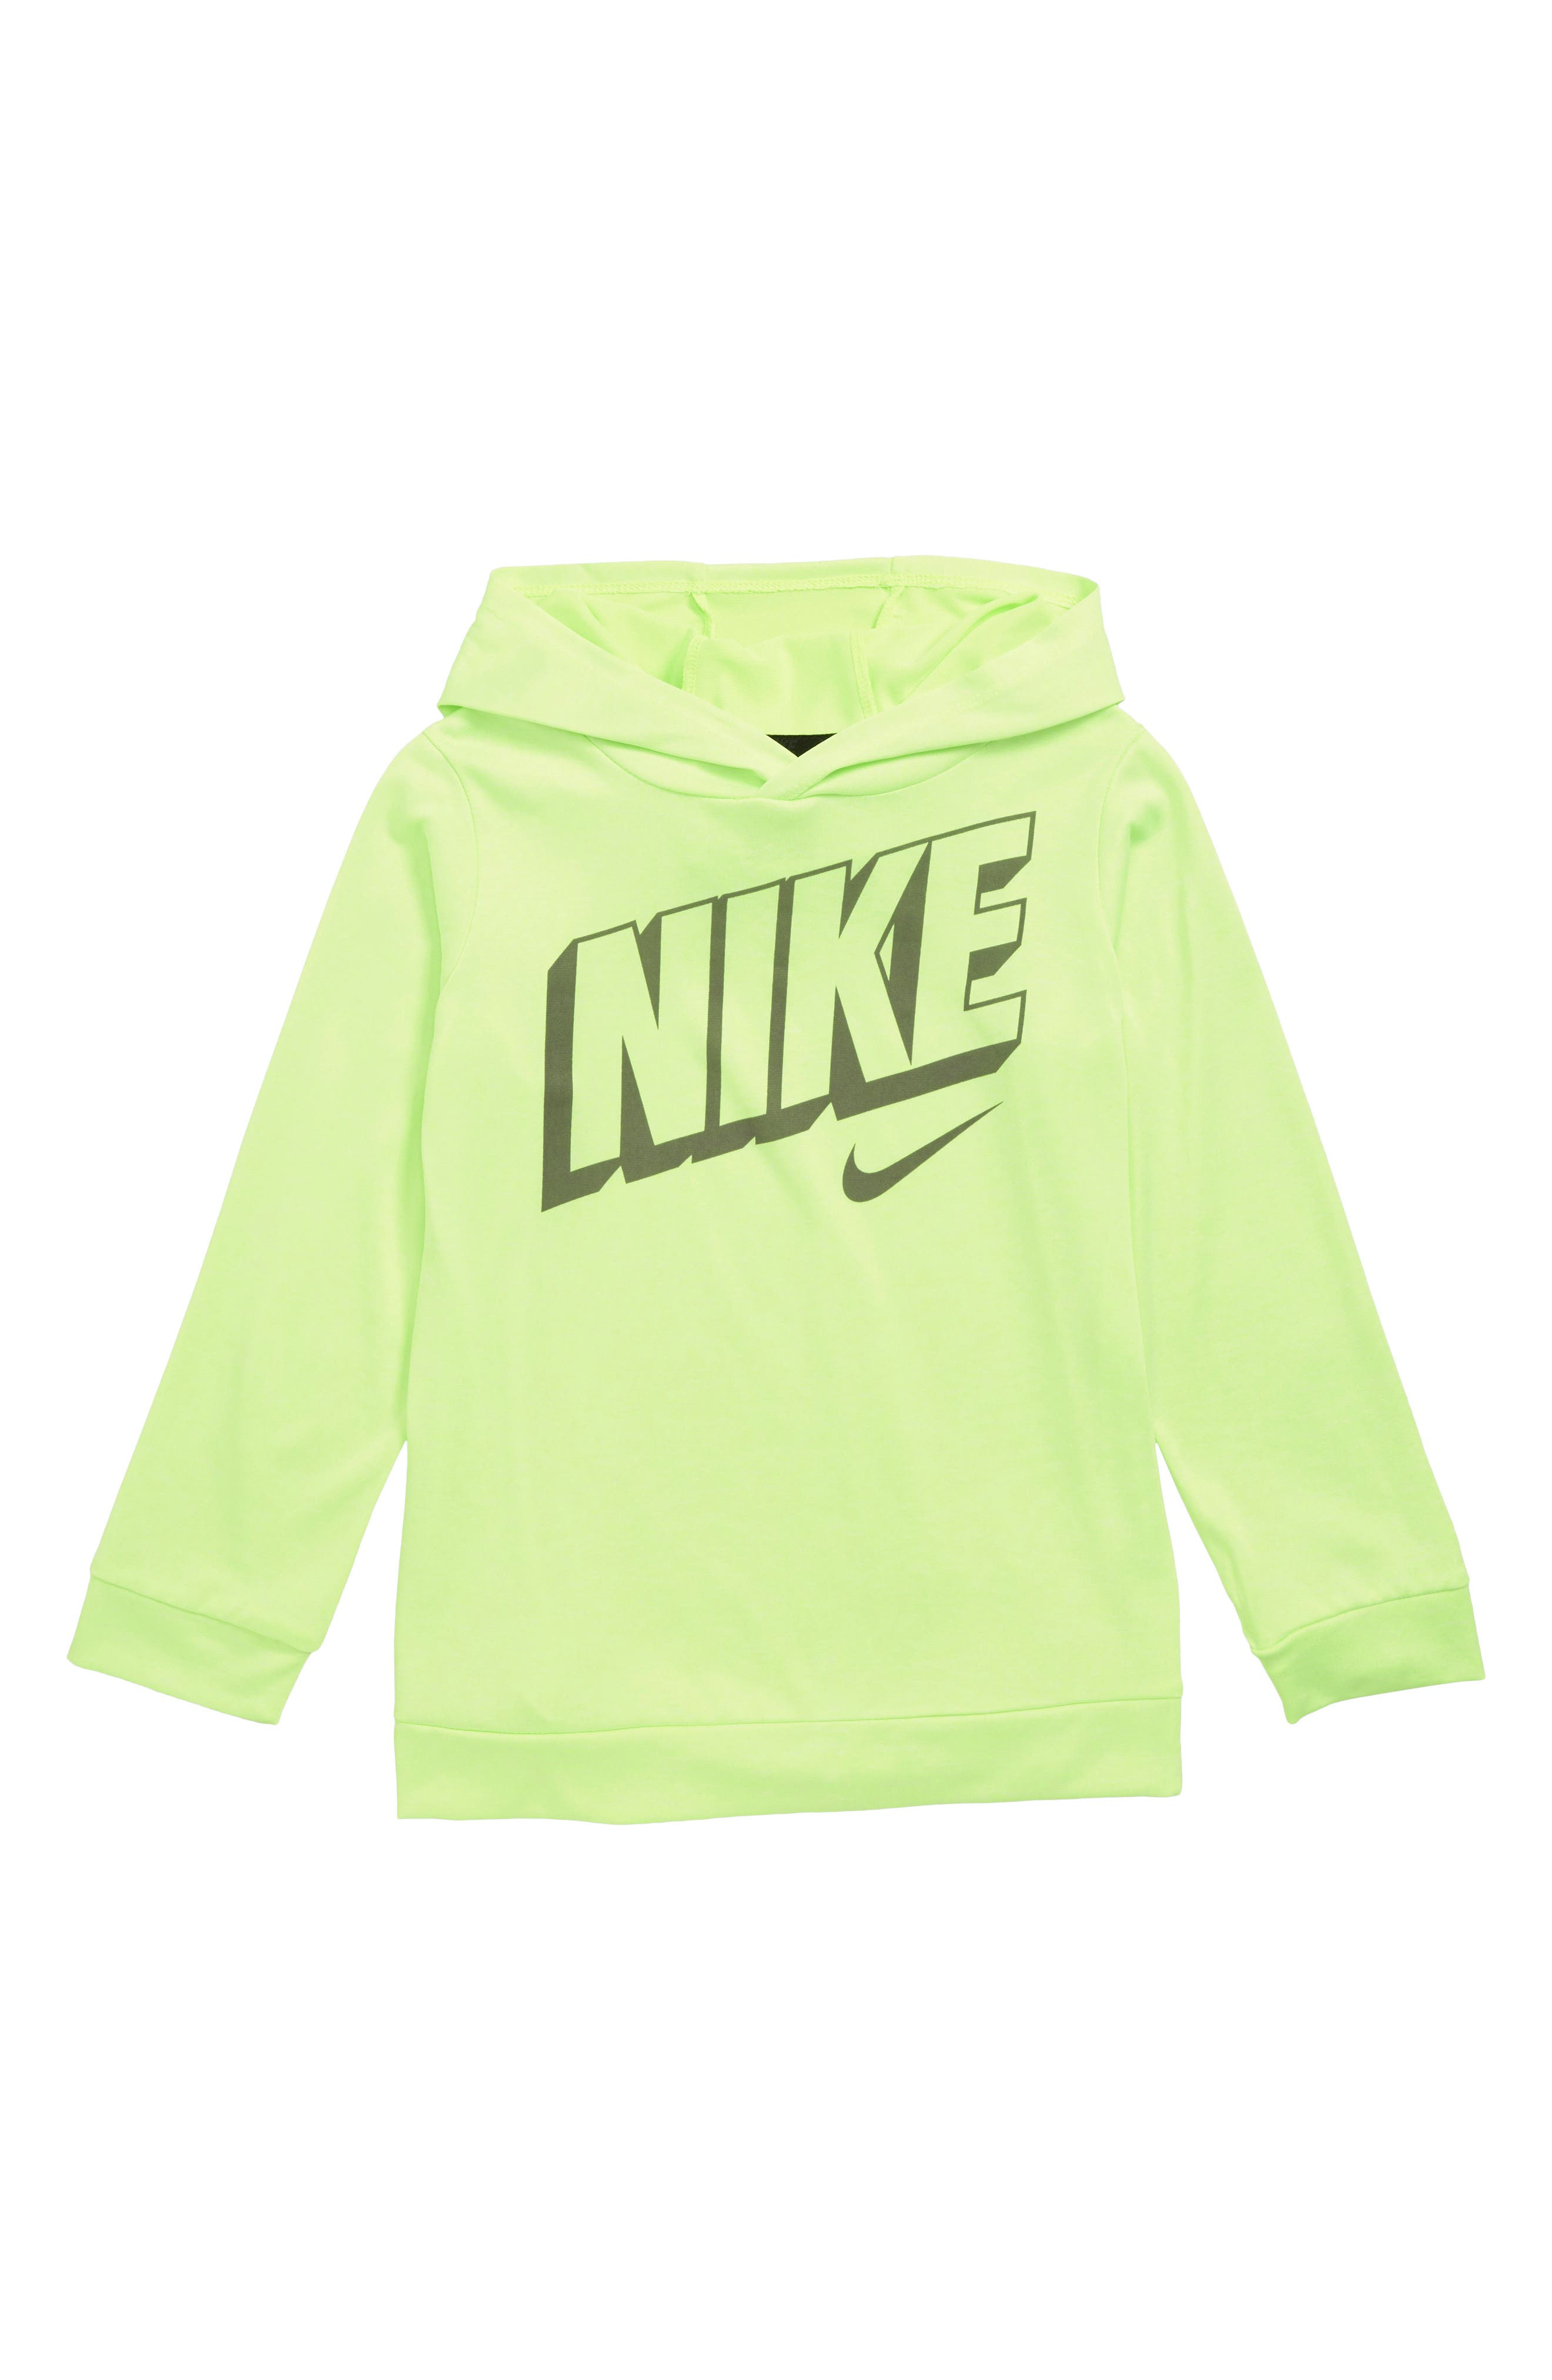 Dry Breathe Graphic Hoodie,                             Main thumbnail 1, color,                             VOLT HEATHER